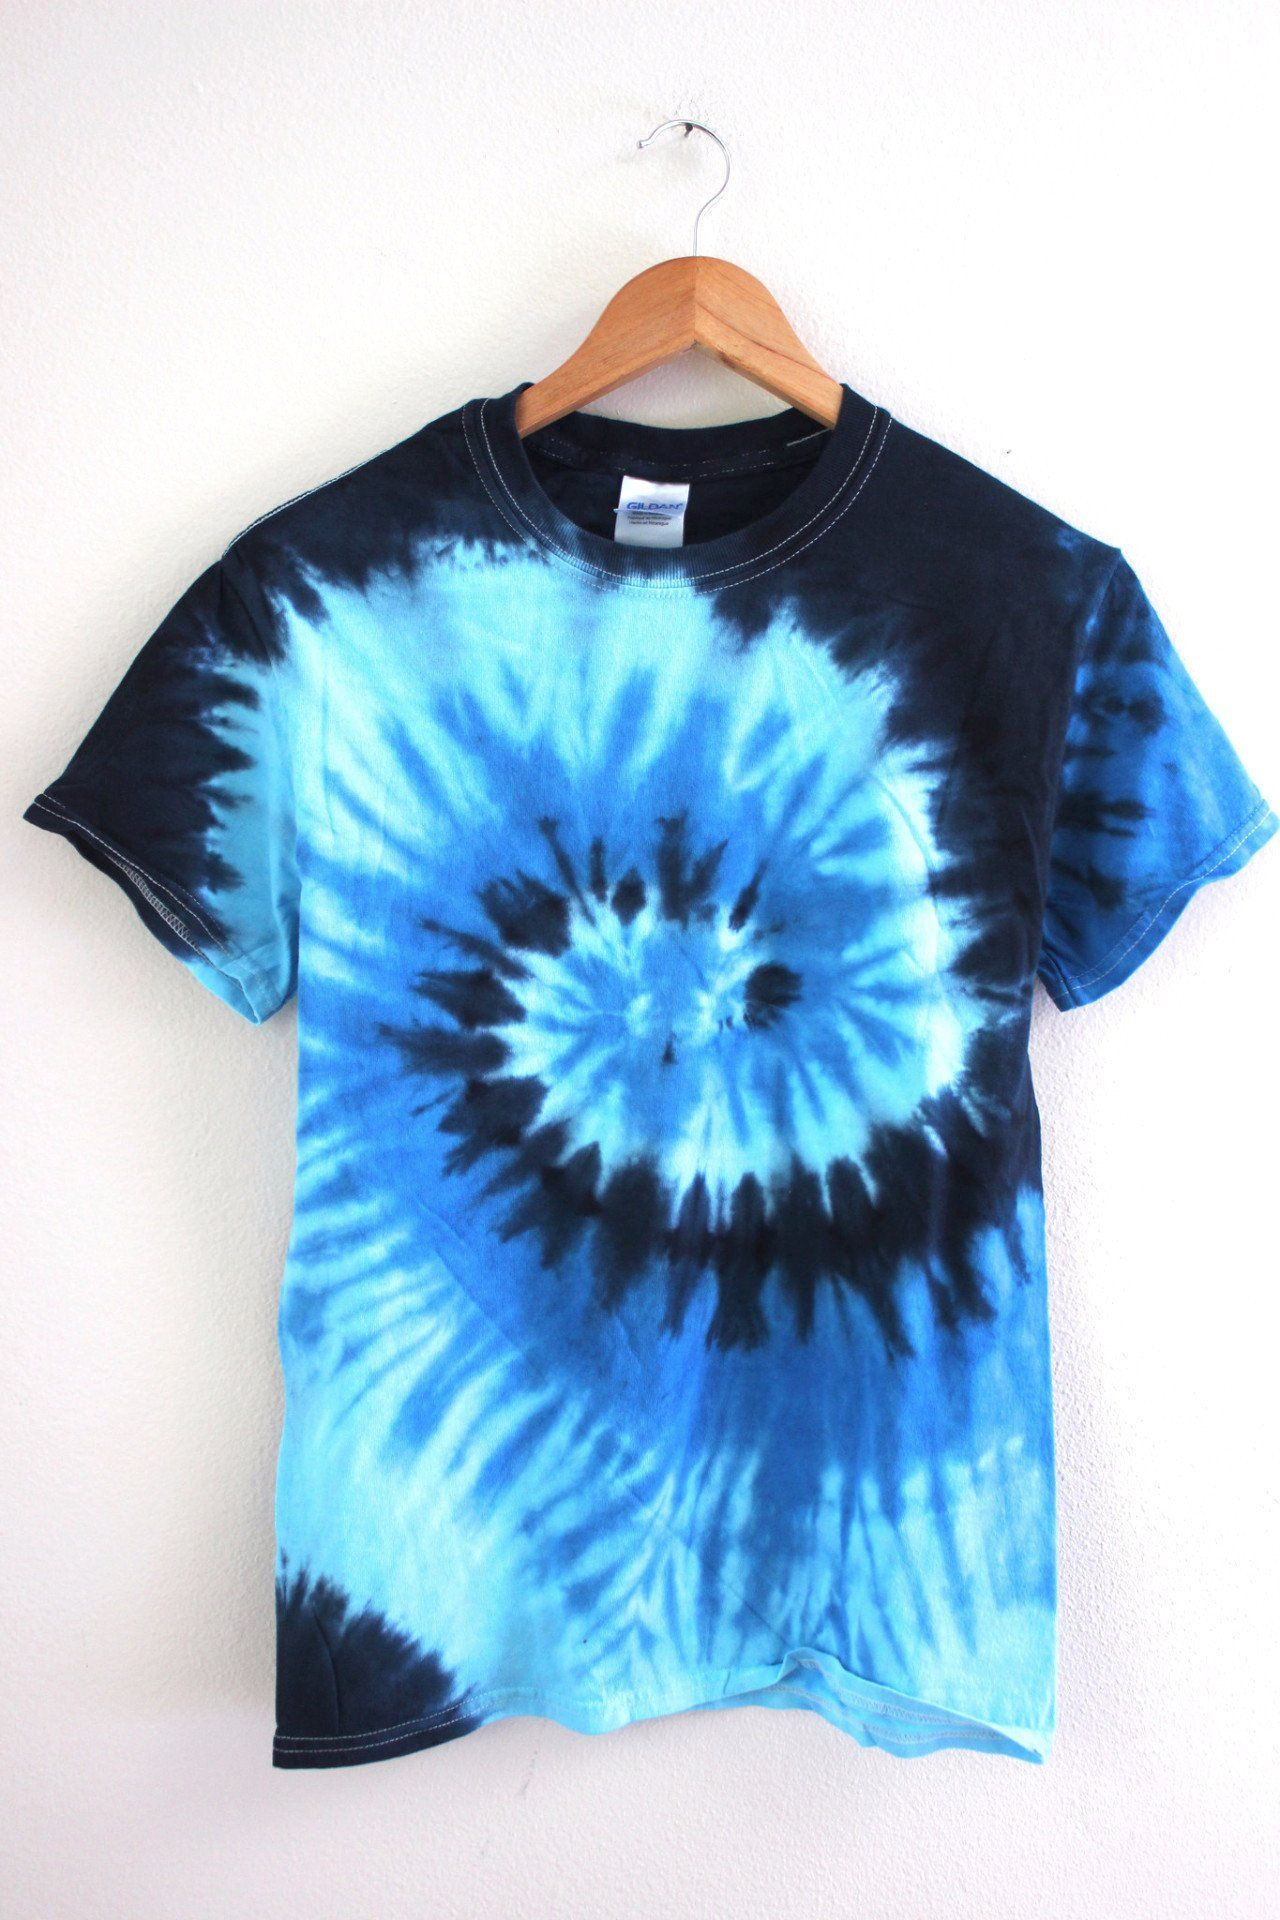 Navy Blue Medium Blue And Baby Blue Ocean Inspired Swirls Tie Dyed T Shirt 100 Cotton Please Not Tie Dye Shirts Patterns Diy Tie Dye Shirts Tie Dye Outfits [ 1920 x 1280 Pixel ]